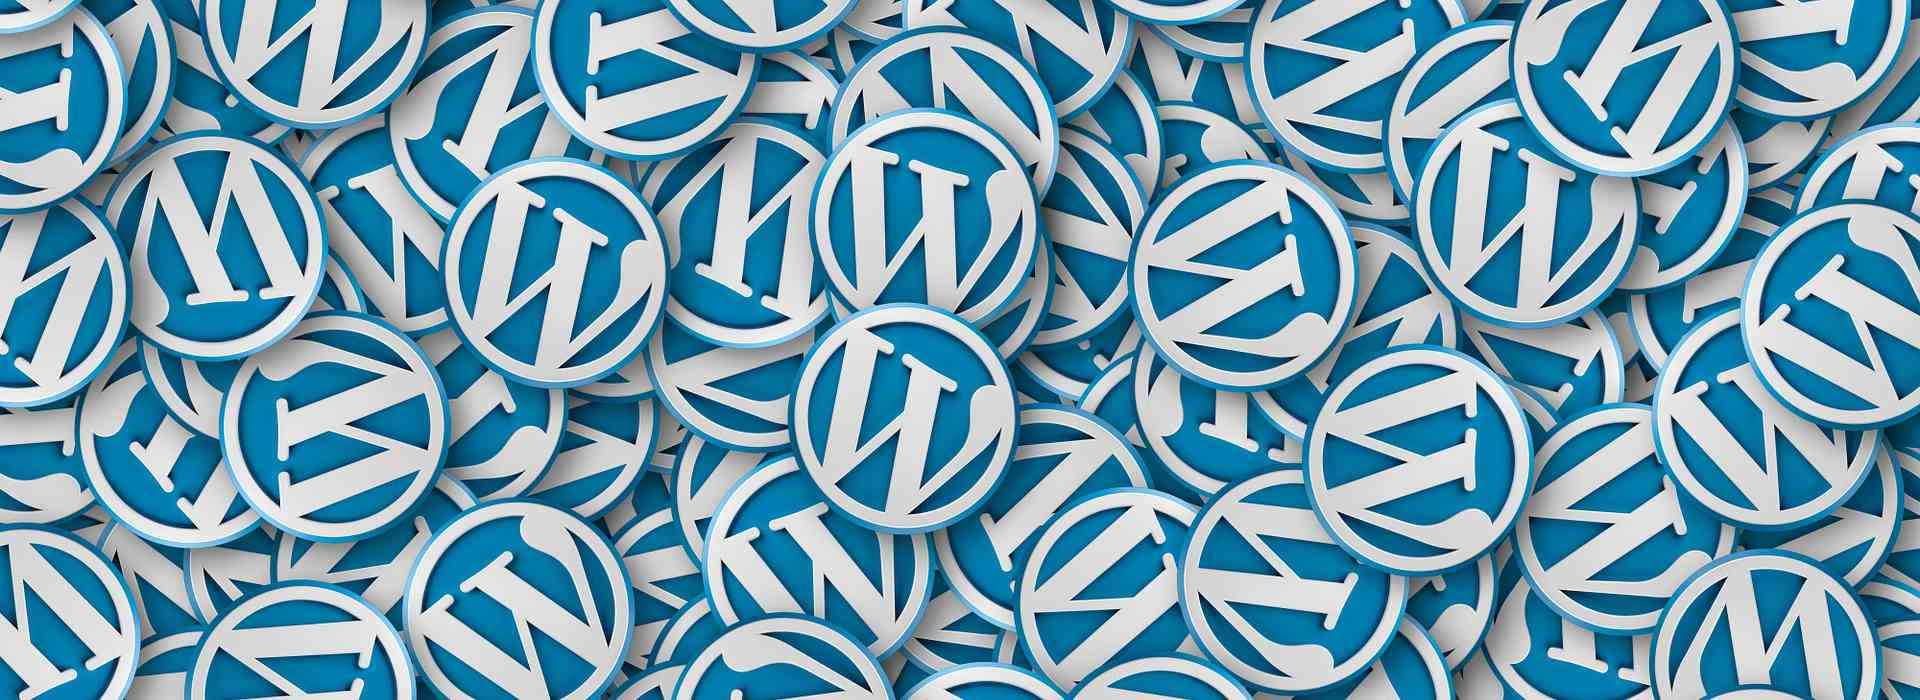 10 WordPress plugins die je moet installeren